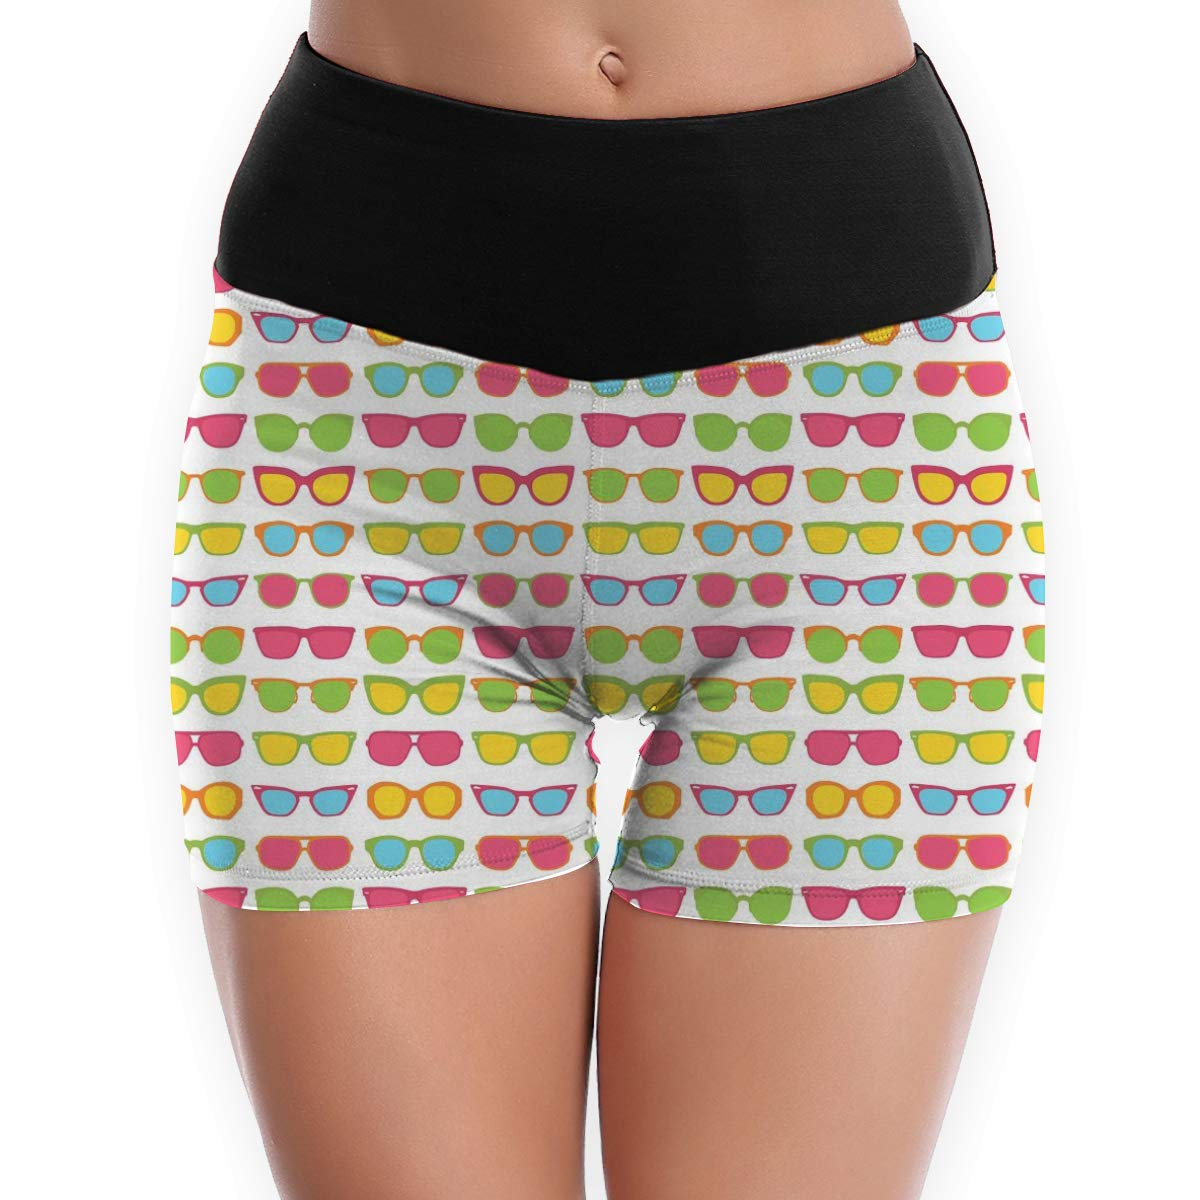 Womens Yoga Booty Shorts Glasses High Waist Compression Tights Slim Fit Stretch Fitness